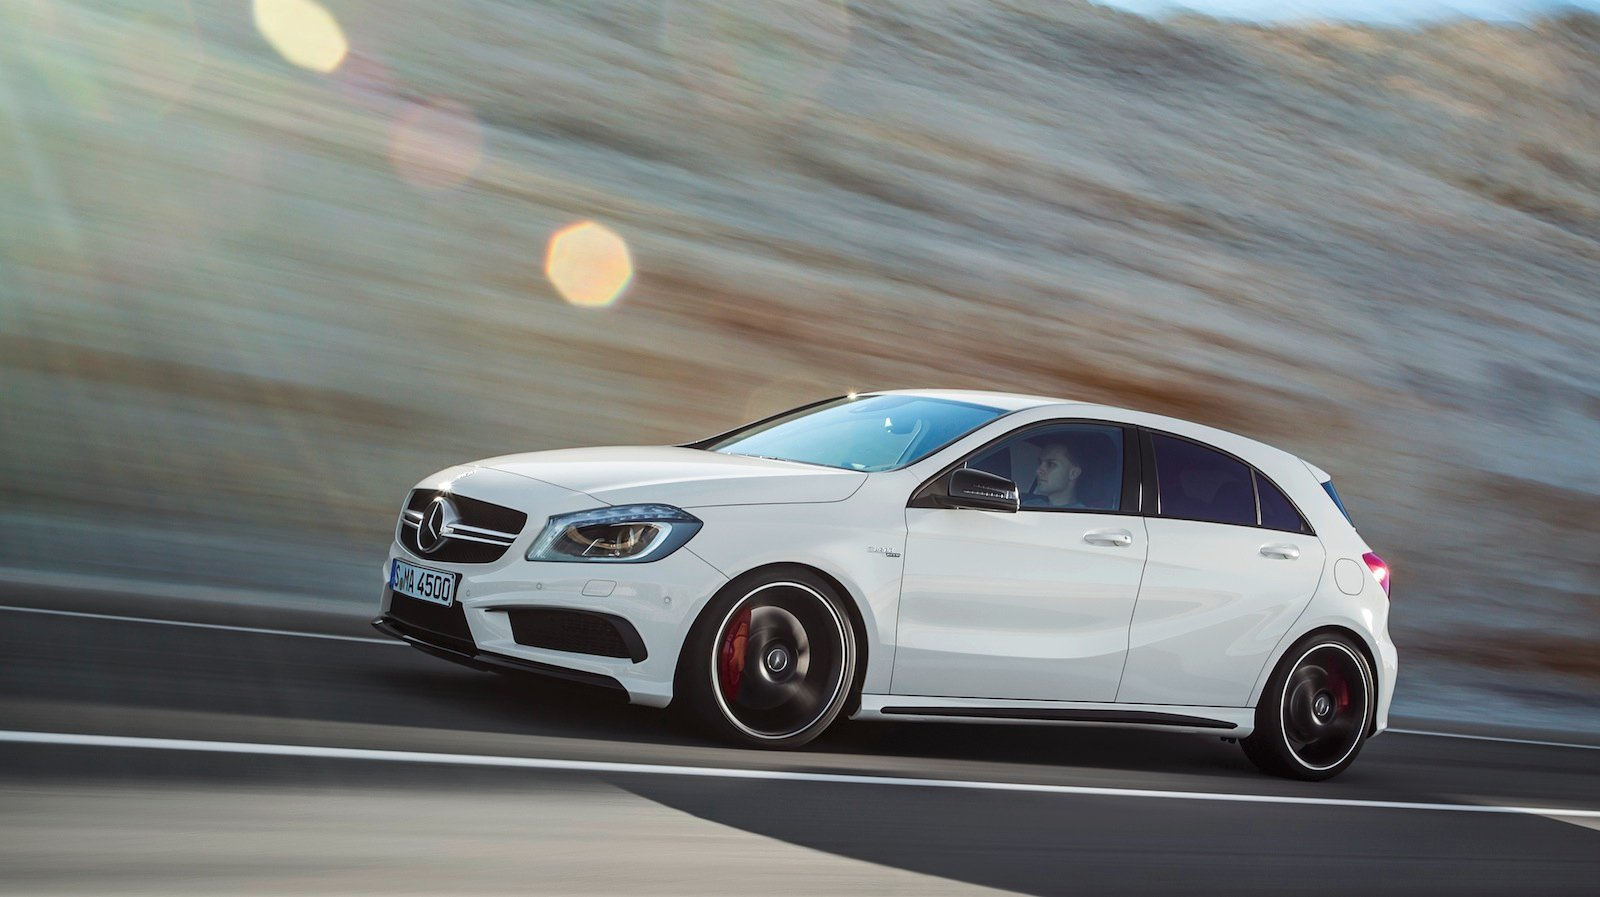 Mercedes benz a45 amg 265kw hot hatch unleashed photos for Mercedes benz small car